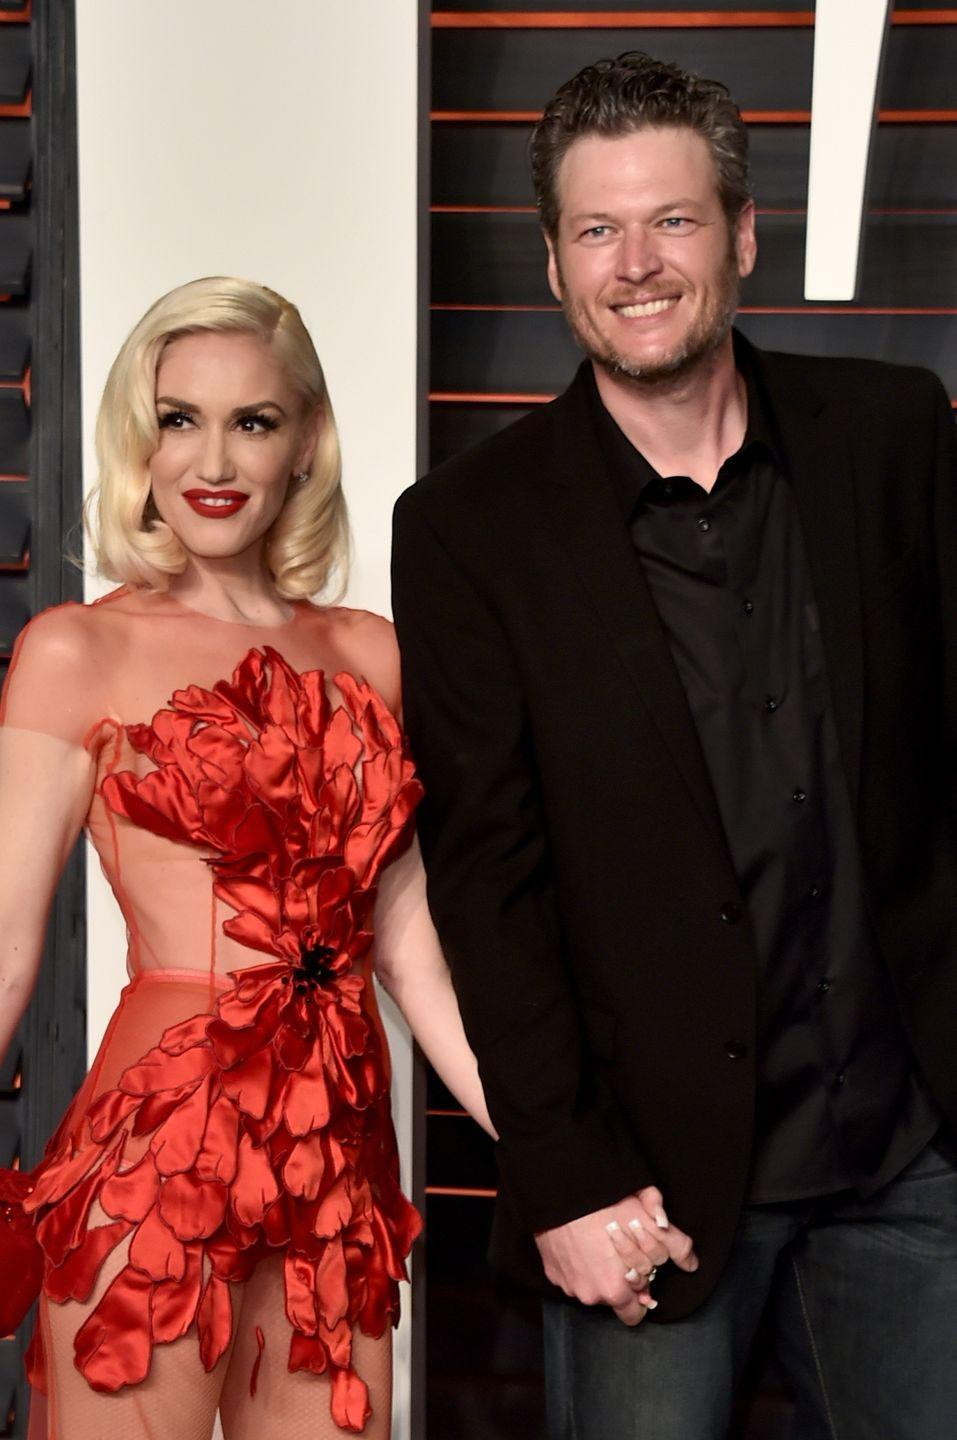 """<p>Of course, Blake Shelton has also written songs about Gwen Stefani — including <a href=""""https://theboot.com/blake-shelton-drops-gwen-stefani-reference-into-turnin-me-on-listen/"""" rel=""""nofollow noopener"""" target=""""_blank"""" data-ylk=""""slk:this steamy song"""" class=""""link rapid-noclick-resp"""">this steamy song</a> where he says """"She's Revlon red in the blackest night."""" Gwen is a <a href=""""https://www.harpersbazaar.com/beauty/makeup/news/a19665/gwen-stefani-revlon/"""" rel=""""nofollow noopener"""" target=""""_blank"""" data-ylk=""""slk:global ambassador for Revlon"""" class=""""link rapid-noclick-resp"""">global ambassador for Revlon</a> and frequently wears red lipstick during public appearances. </p>"""